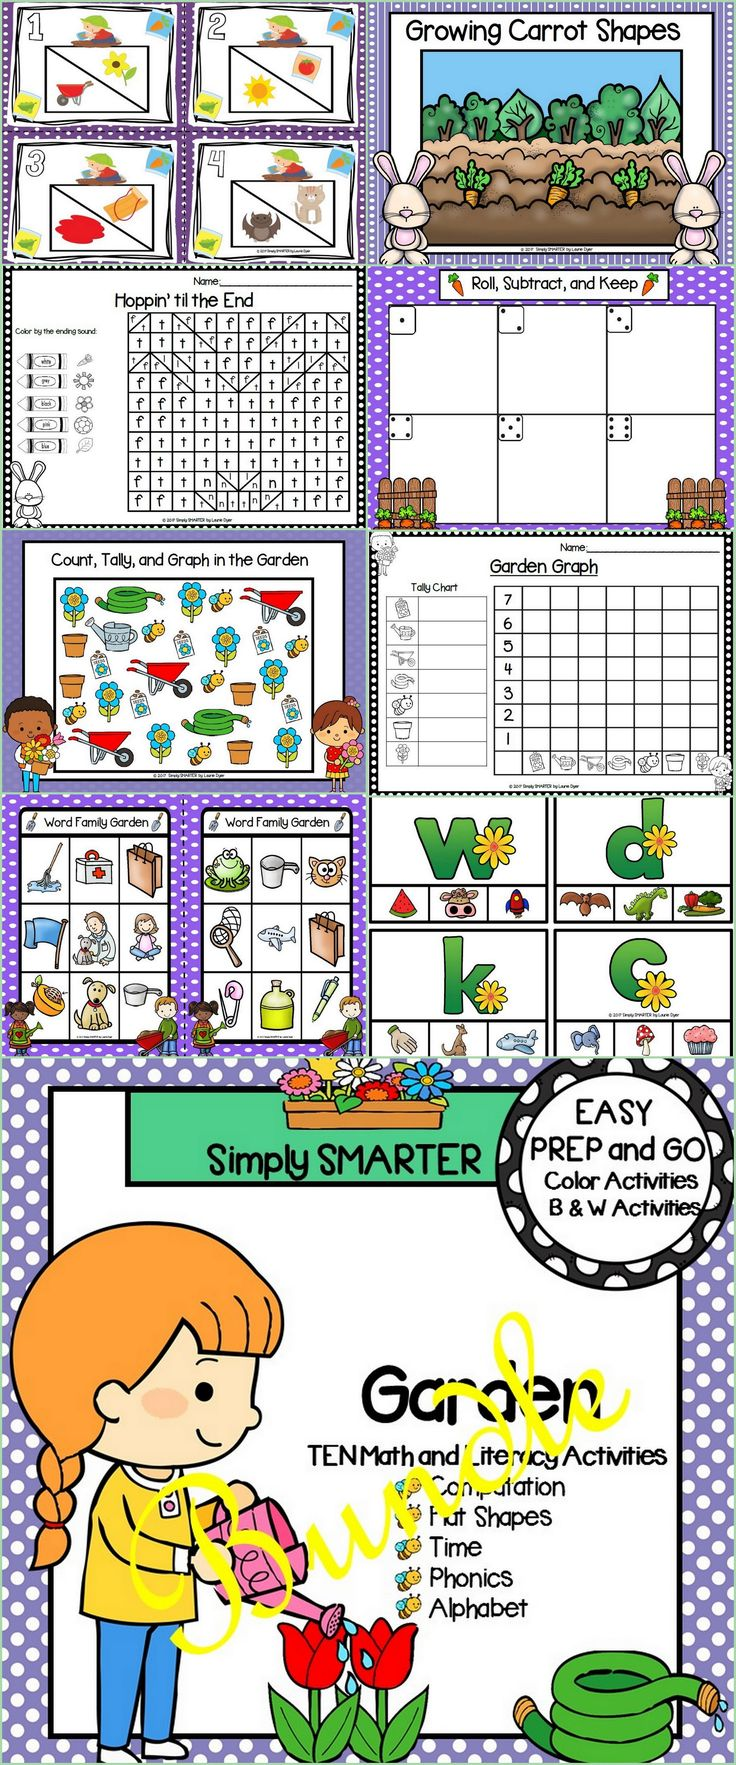 Are you looking for EASY PREP literacy and math activities for preschool, kindergarten, or first grade? Then enjoy this phonics and math resource which is comprised of TEN different GARDEN themed activities complete with a combination of color and black and white activities.  The bundle includes a variety of engaging activities such as Bingo, clip cards, cut and paste sentences, Play-Doh mats, write the room, and MORE!